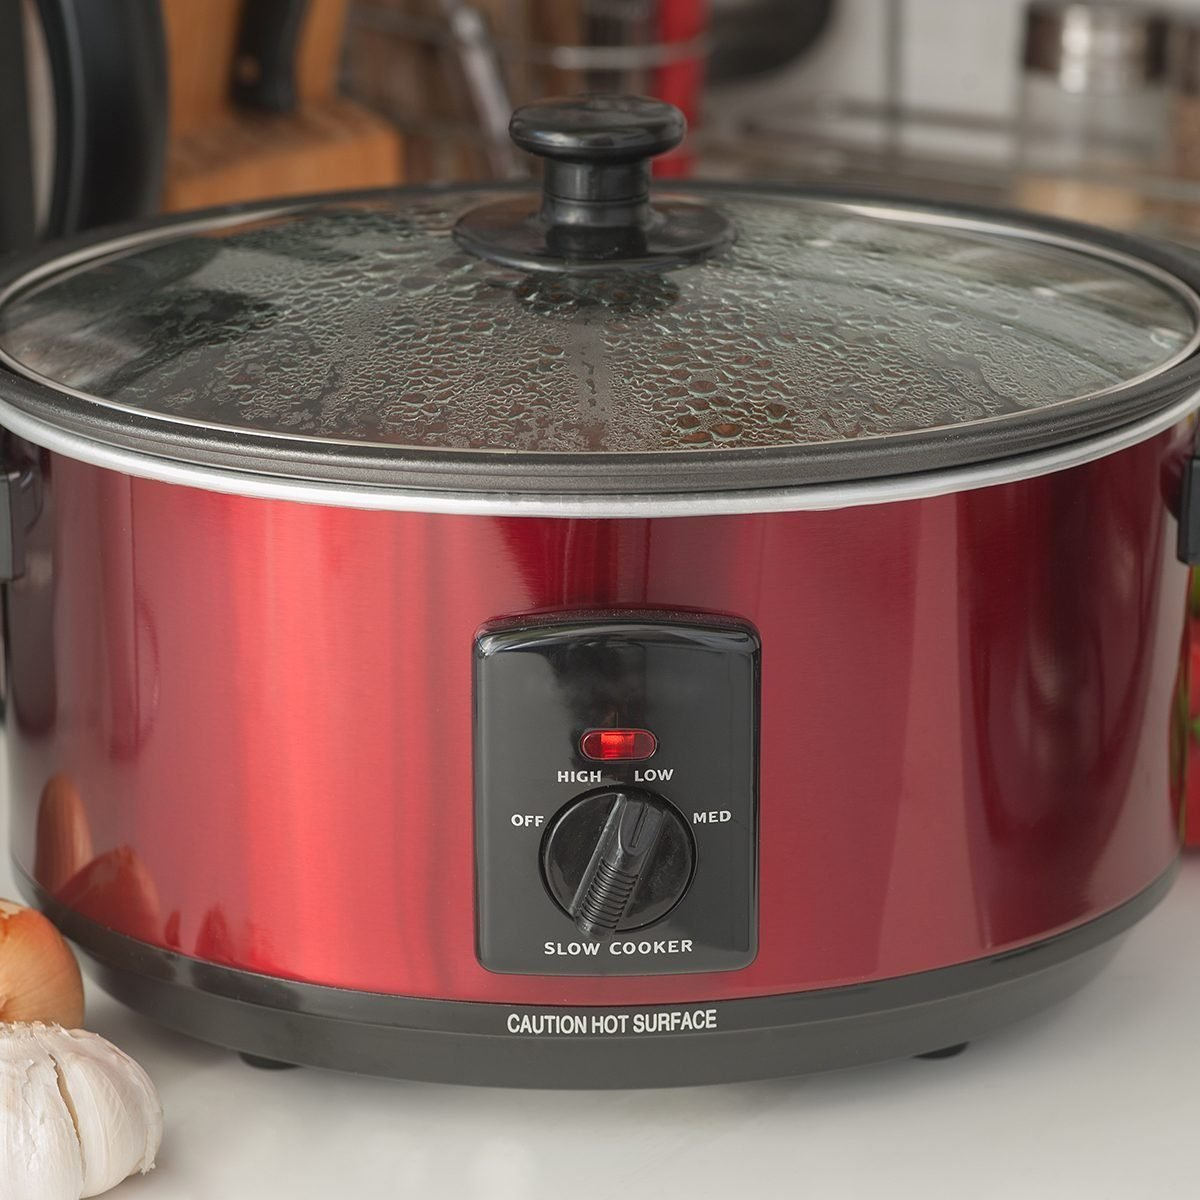 Close up of a slow cooker working on kitchen shelf; Shutterstock ID 310888622